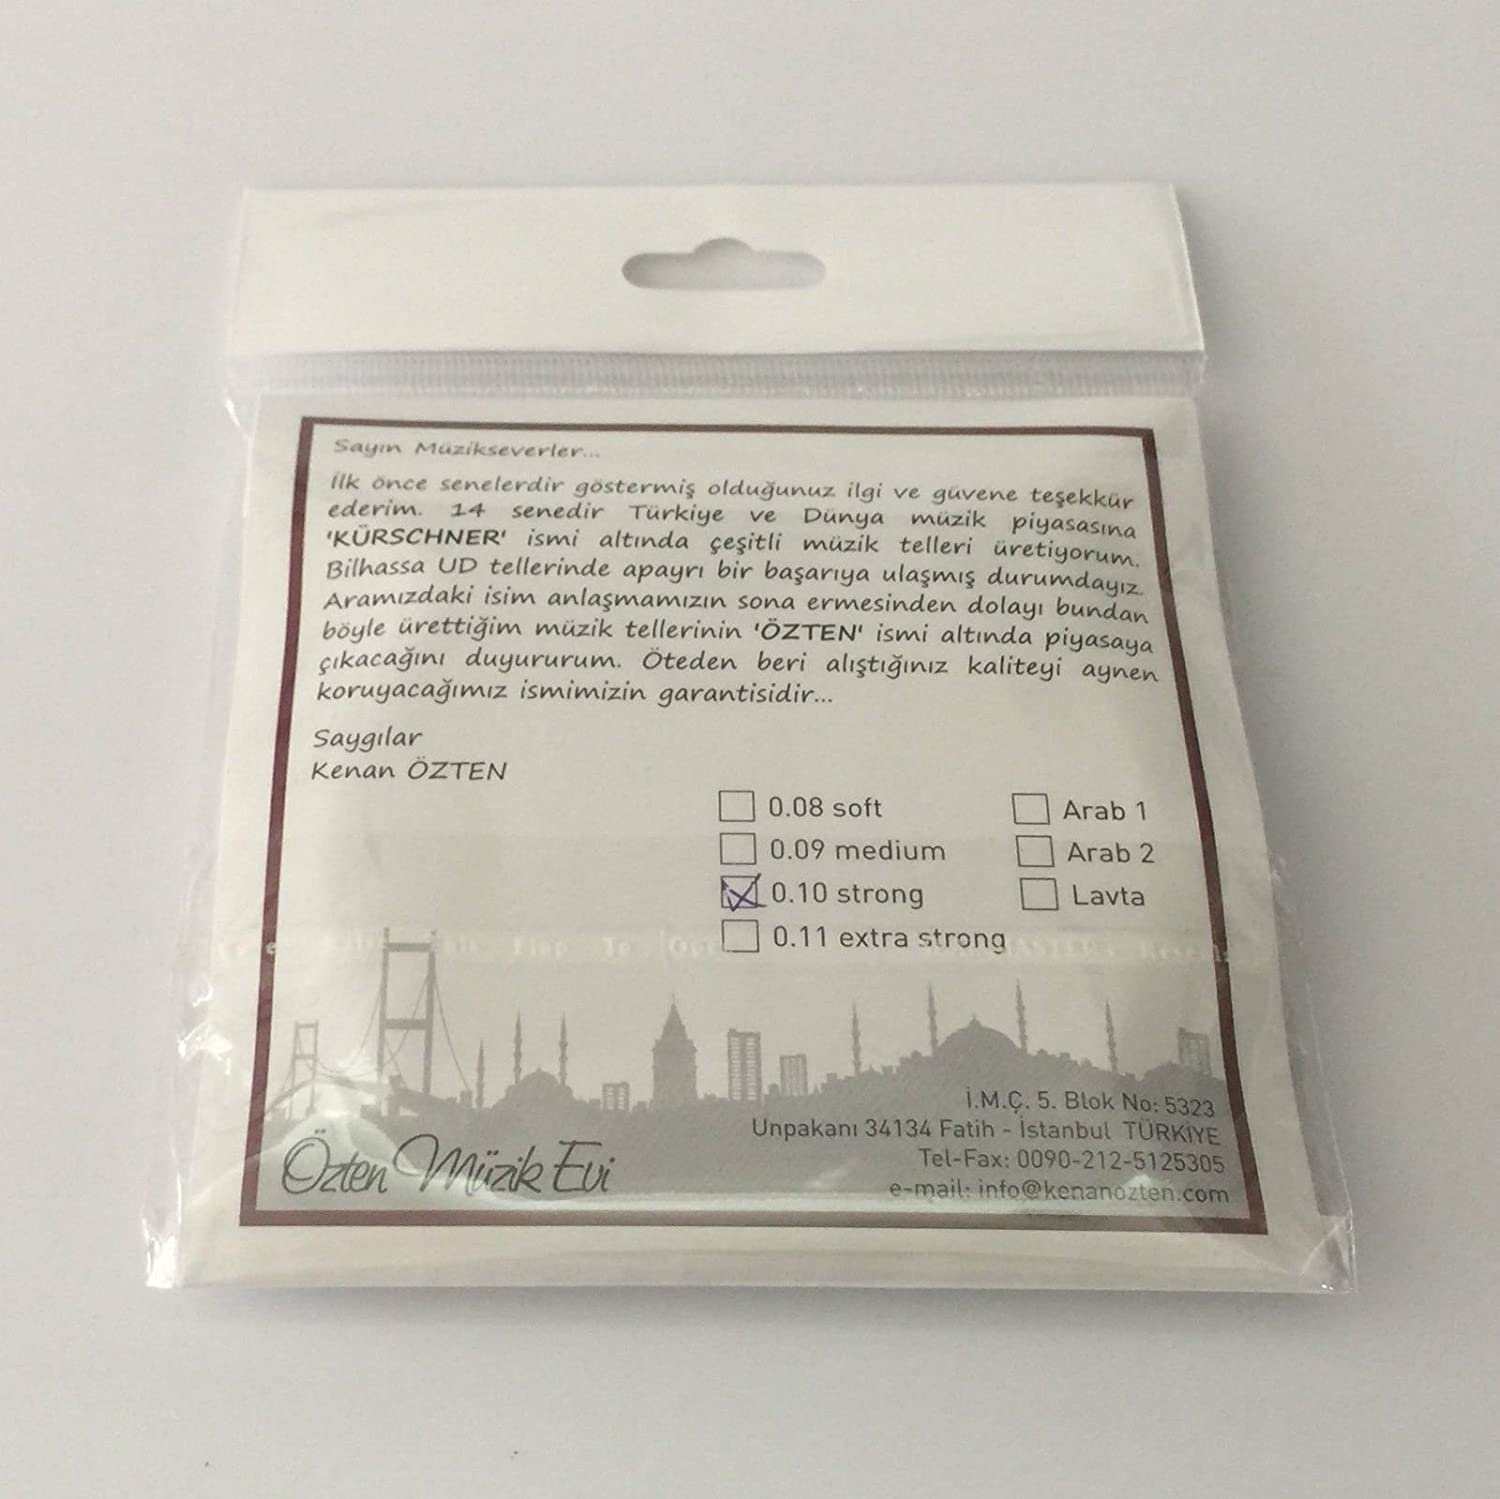 Professional Strings For Turkish Oud Ud 0.10